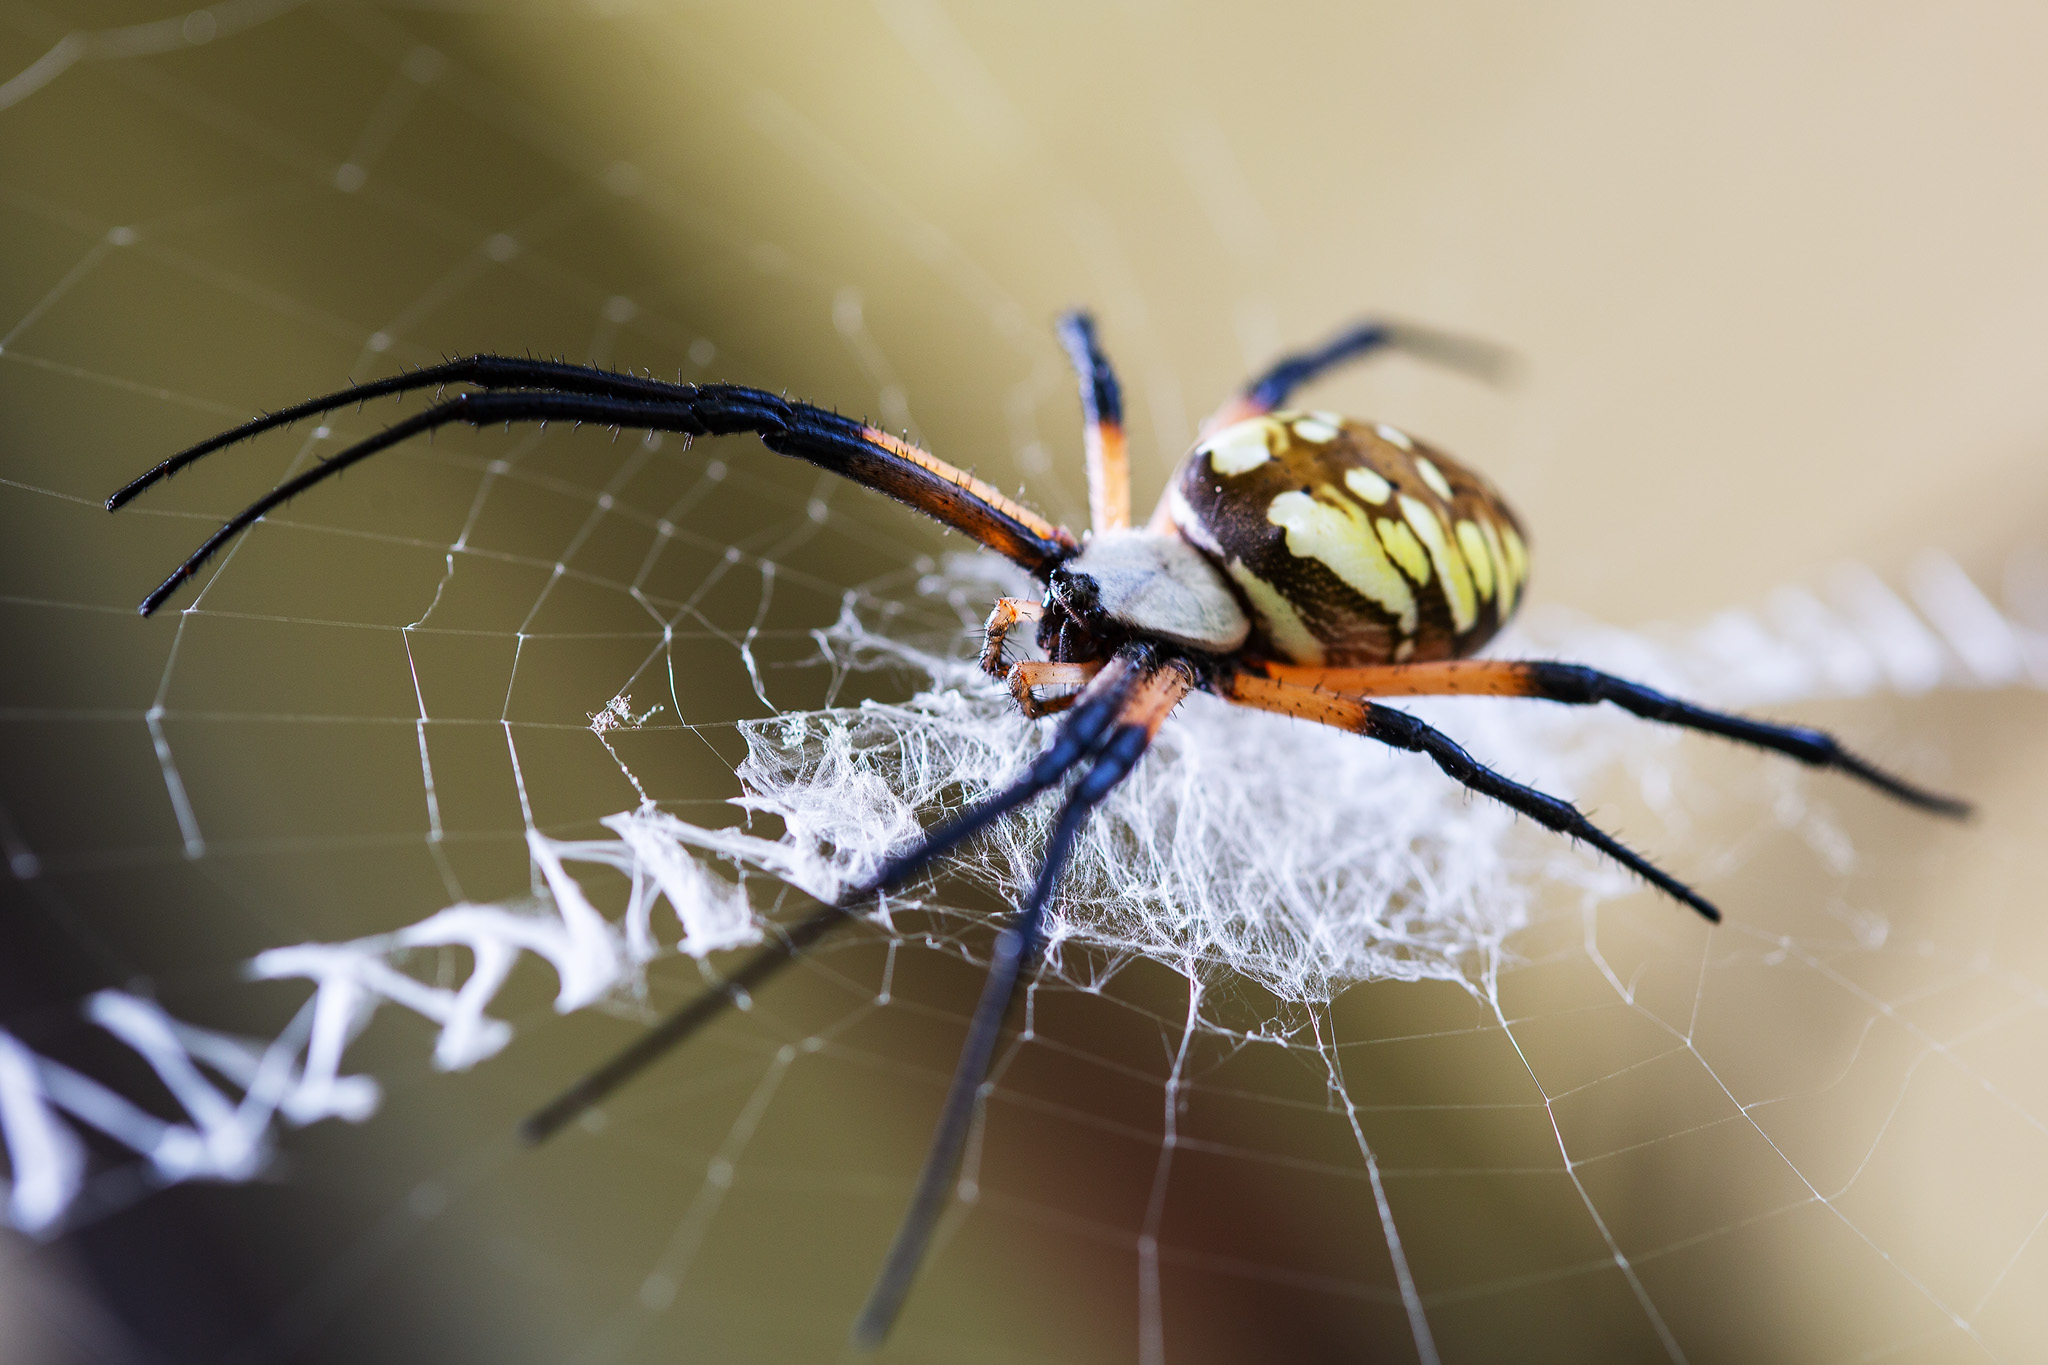 orb weaver spider showing off stabilimentum